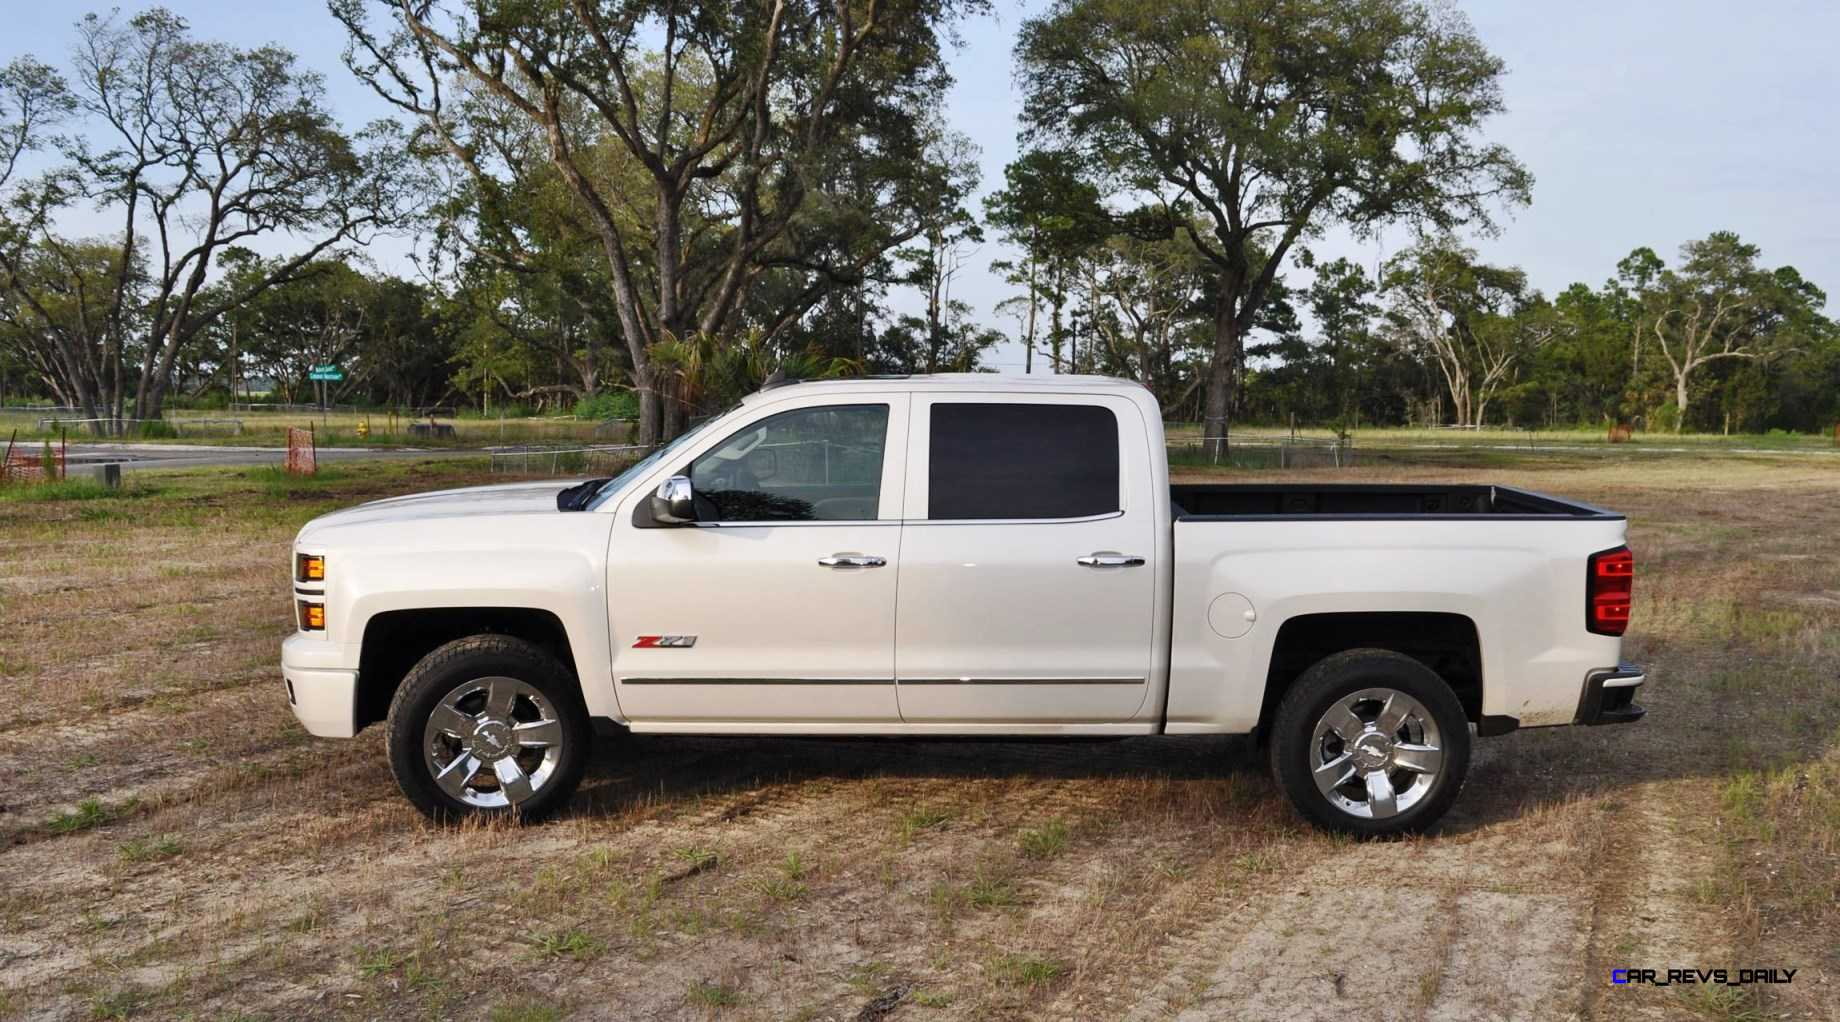 2015 chevrolet silverado ltz z71 4wd custom sport edition 16. Black Bedroom Furniture Sets. Home Design Ideas